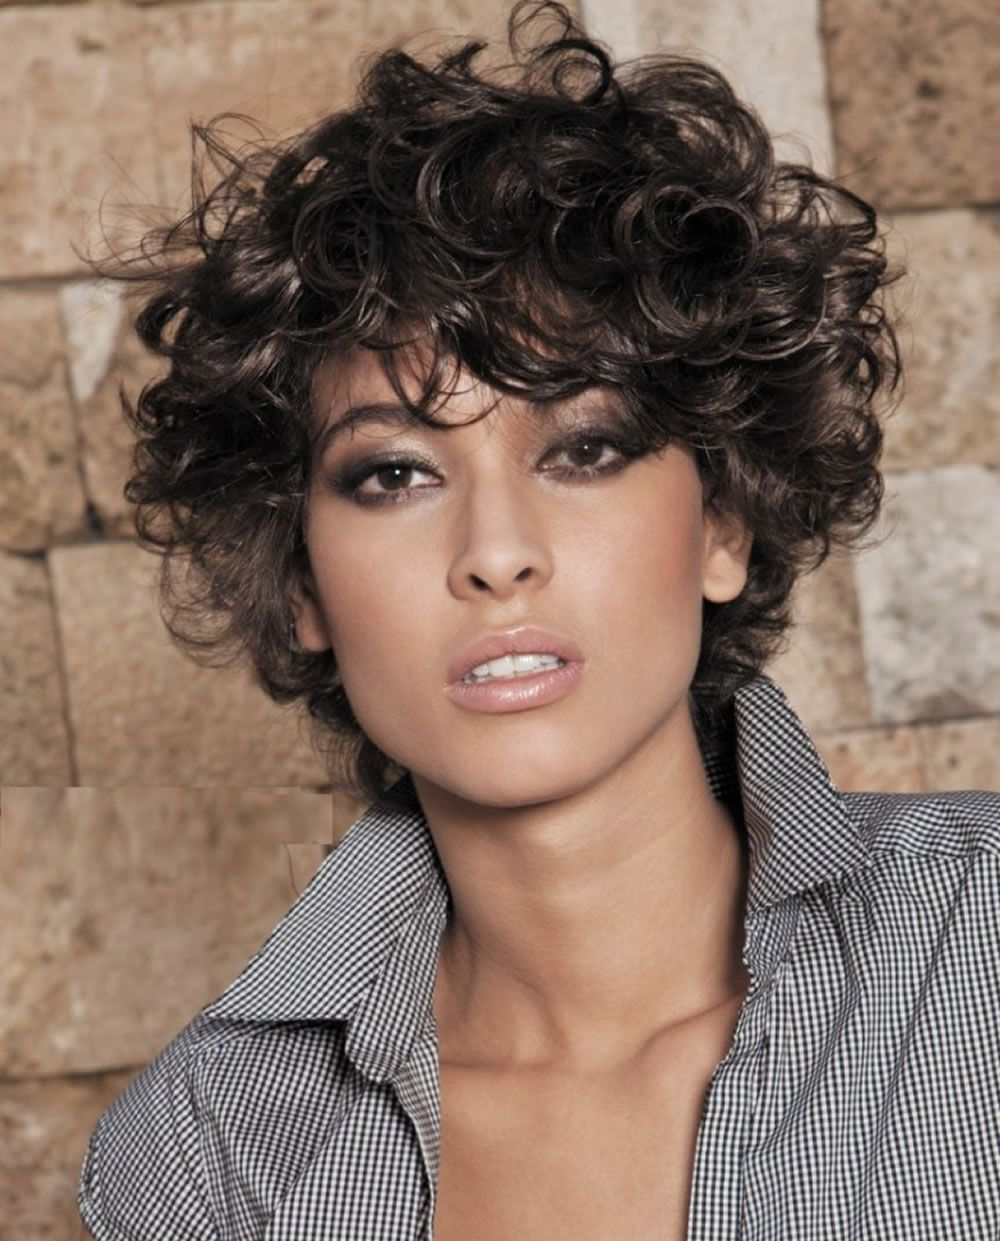 4 Black Hair Colour Short Hairstyles For Curly Hair 2019 Curly Hair 2019 Hairstyles For Curly Hair Styles Short Curly Hairstyles For Women Short Hair Styles